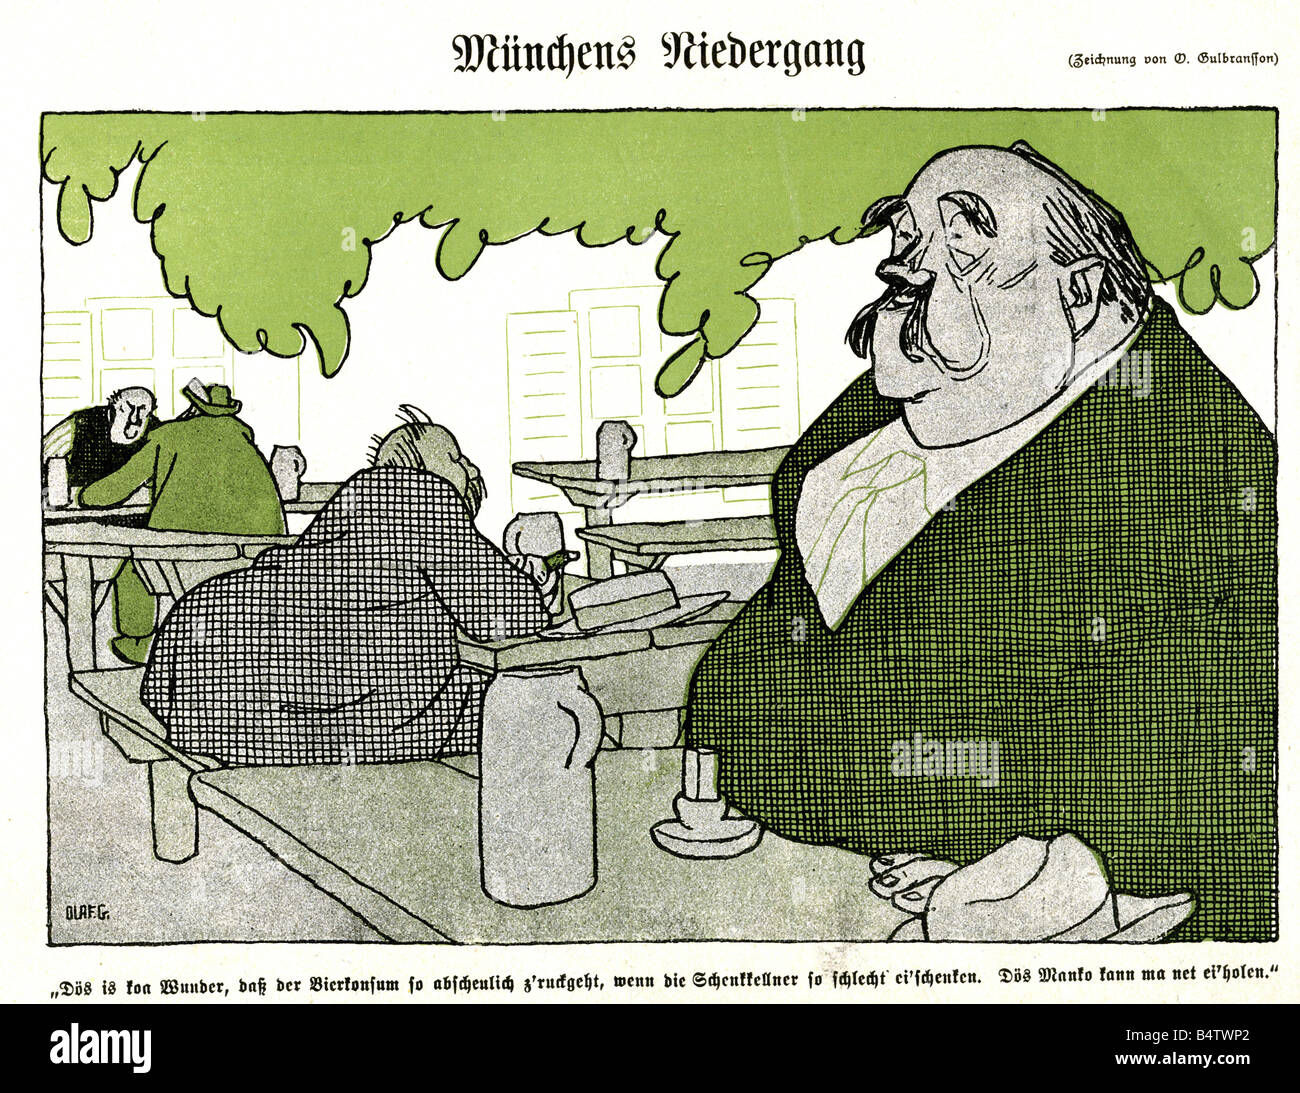 alcohol, beer, caricature against badly poured mugs, 'The decline of Munich', drawing by Olaf Gulbransson, - Stock Image